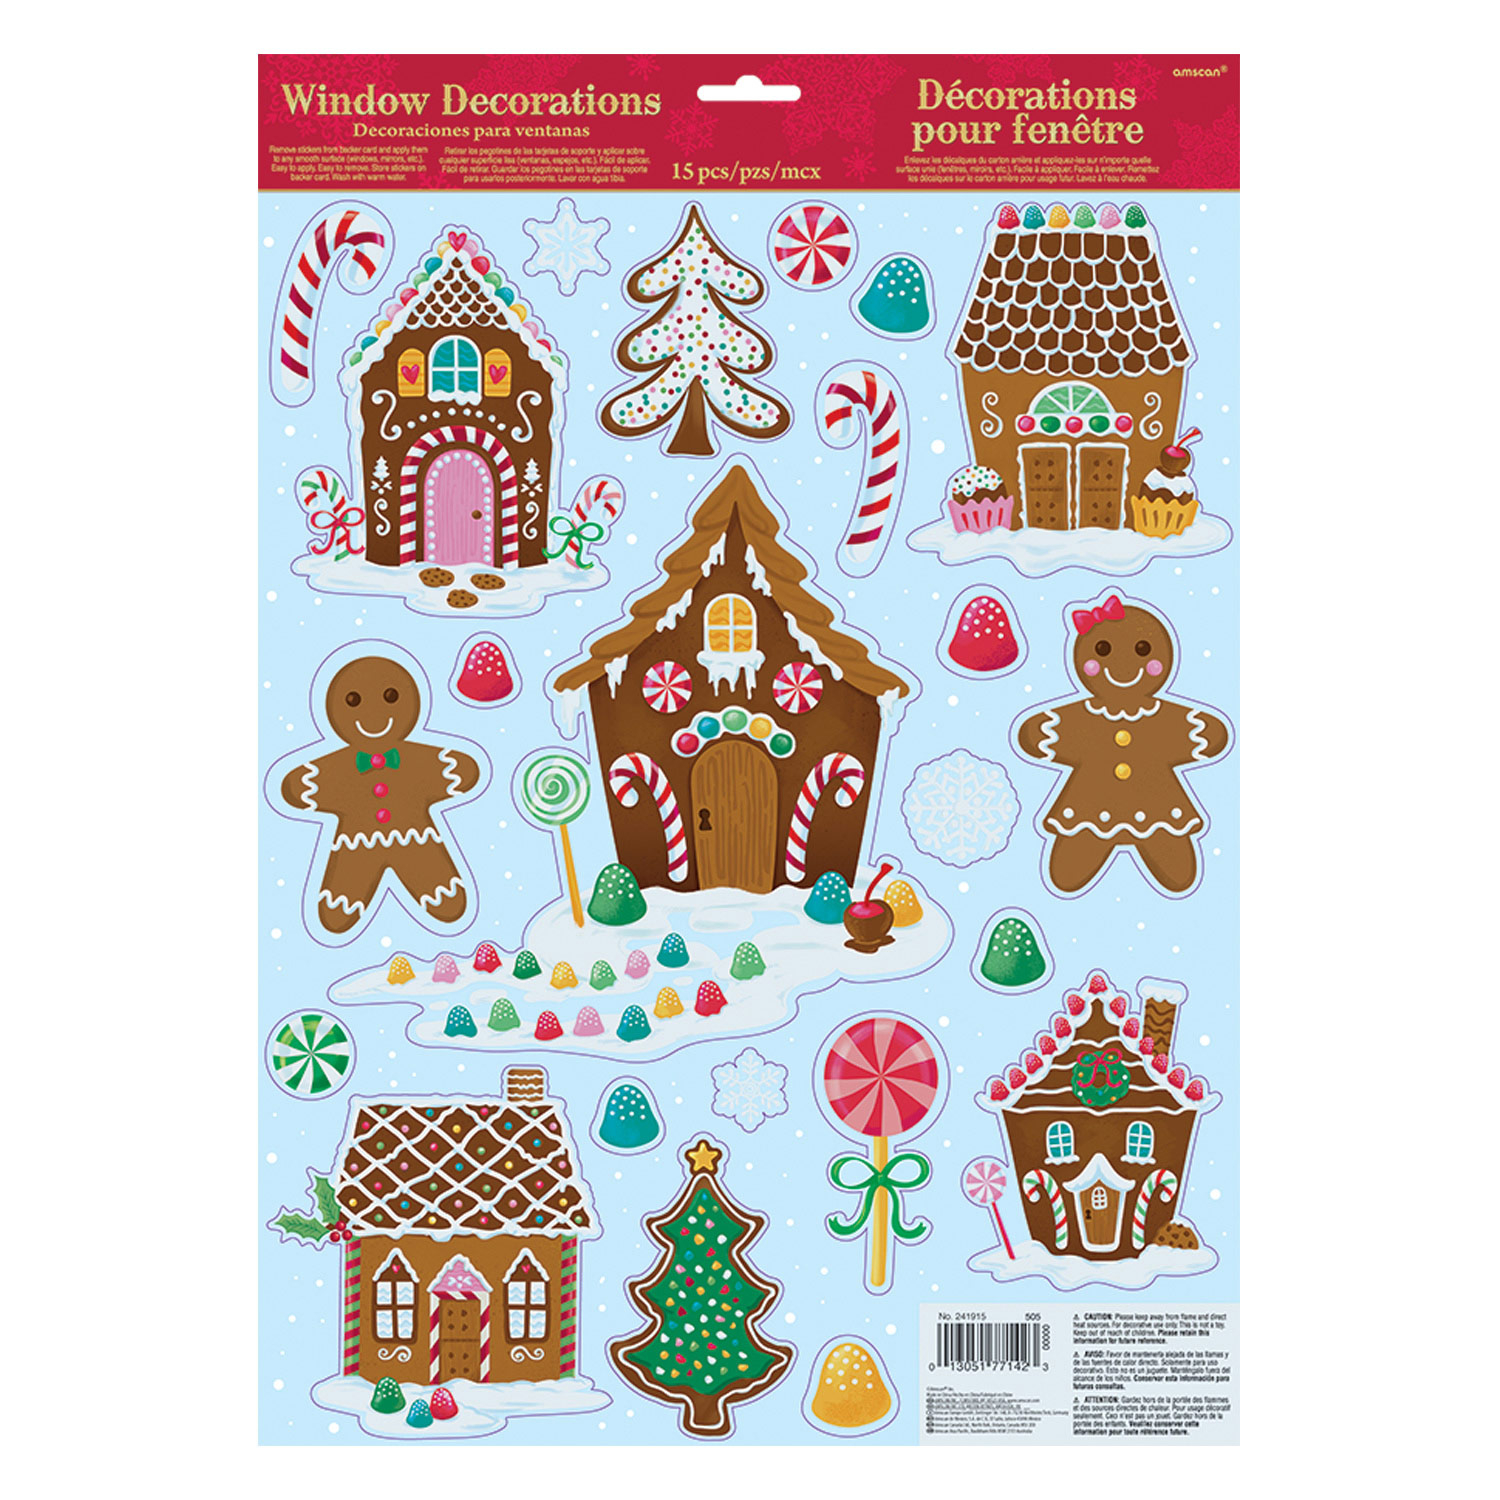 Gingerbread house vinyl window decorations 12 pc for Christmas window decorations clearance